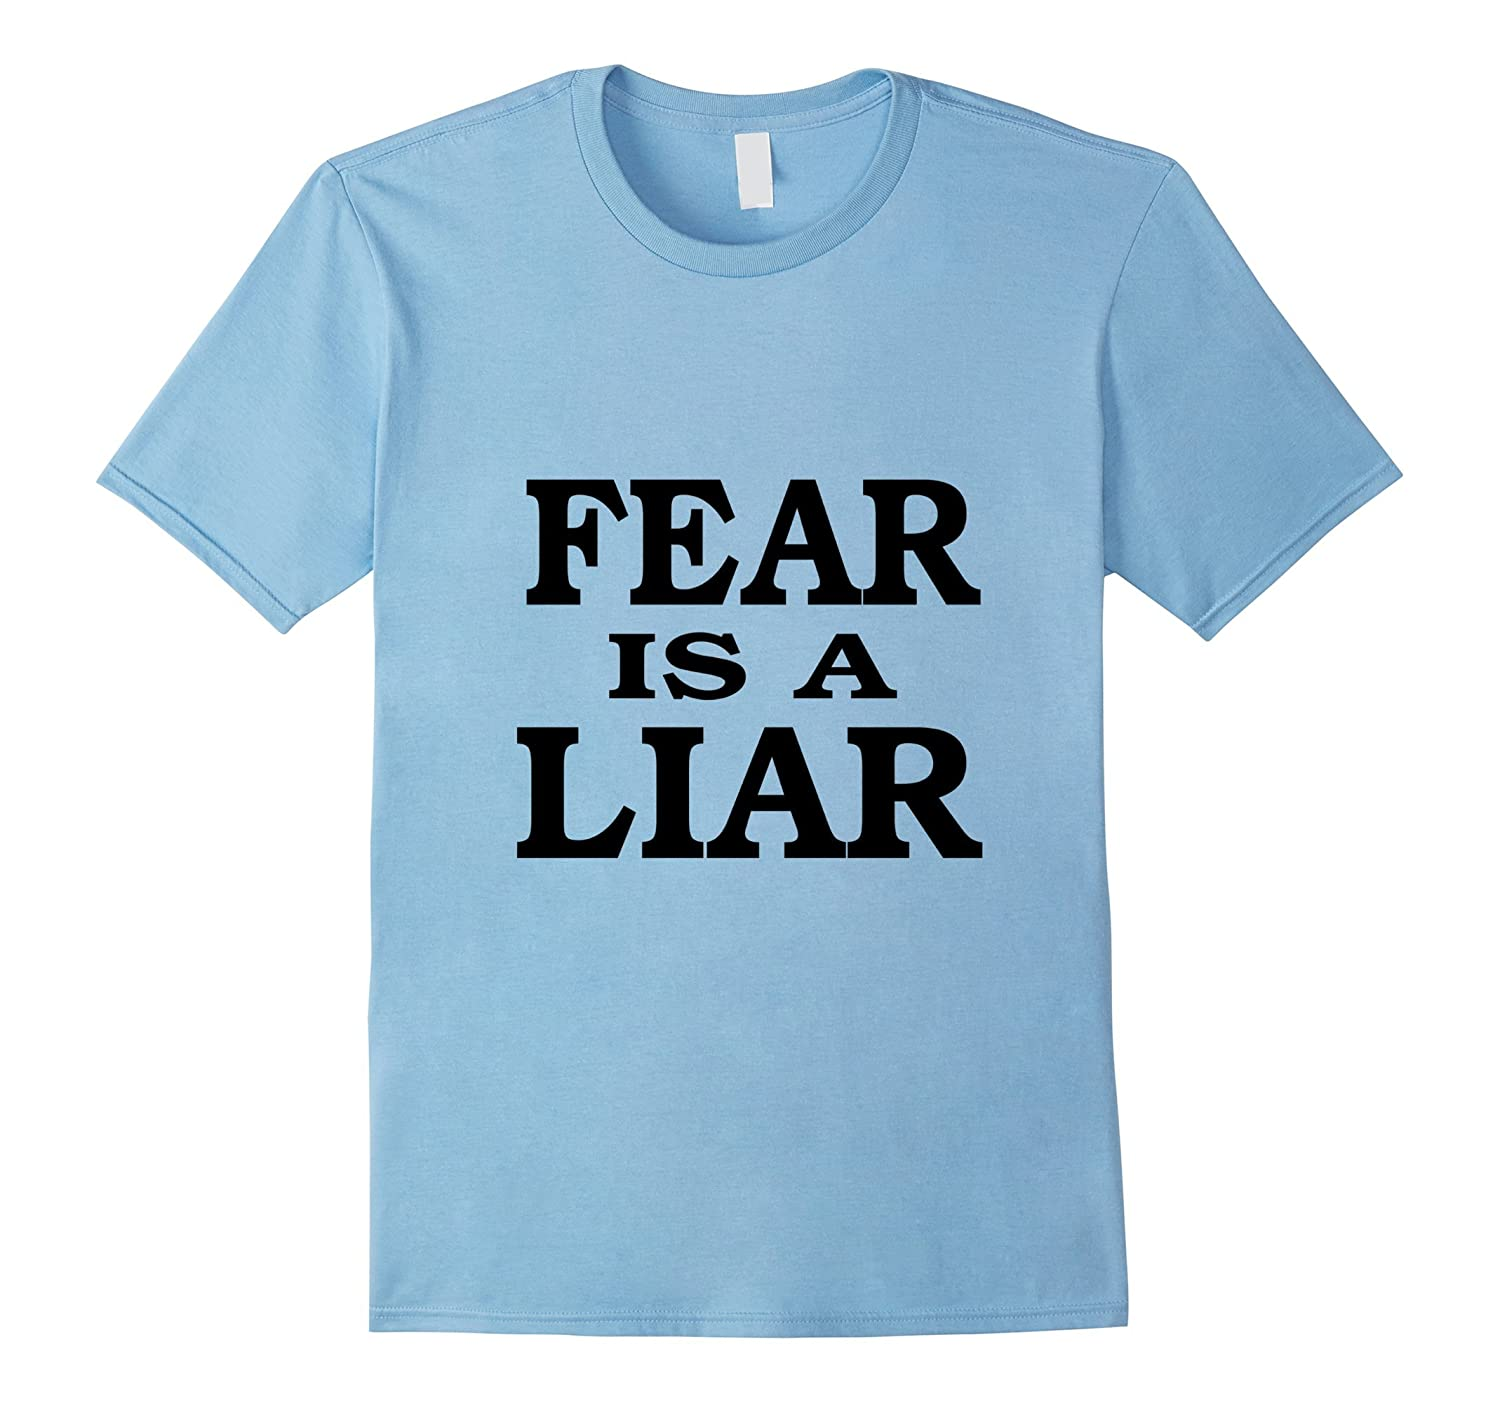 Fear is a liar t shirt-TD